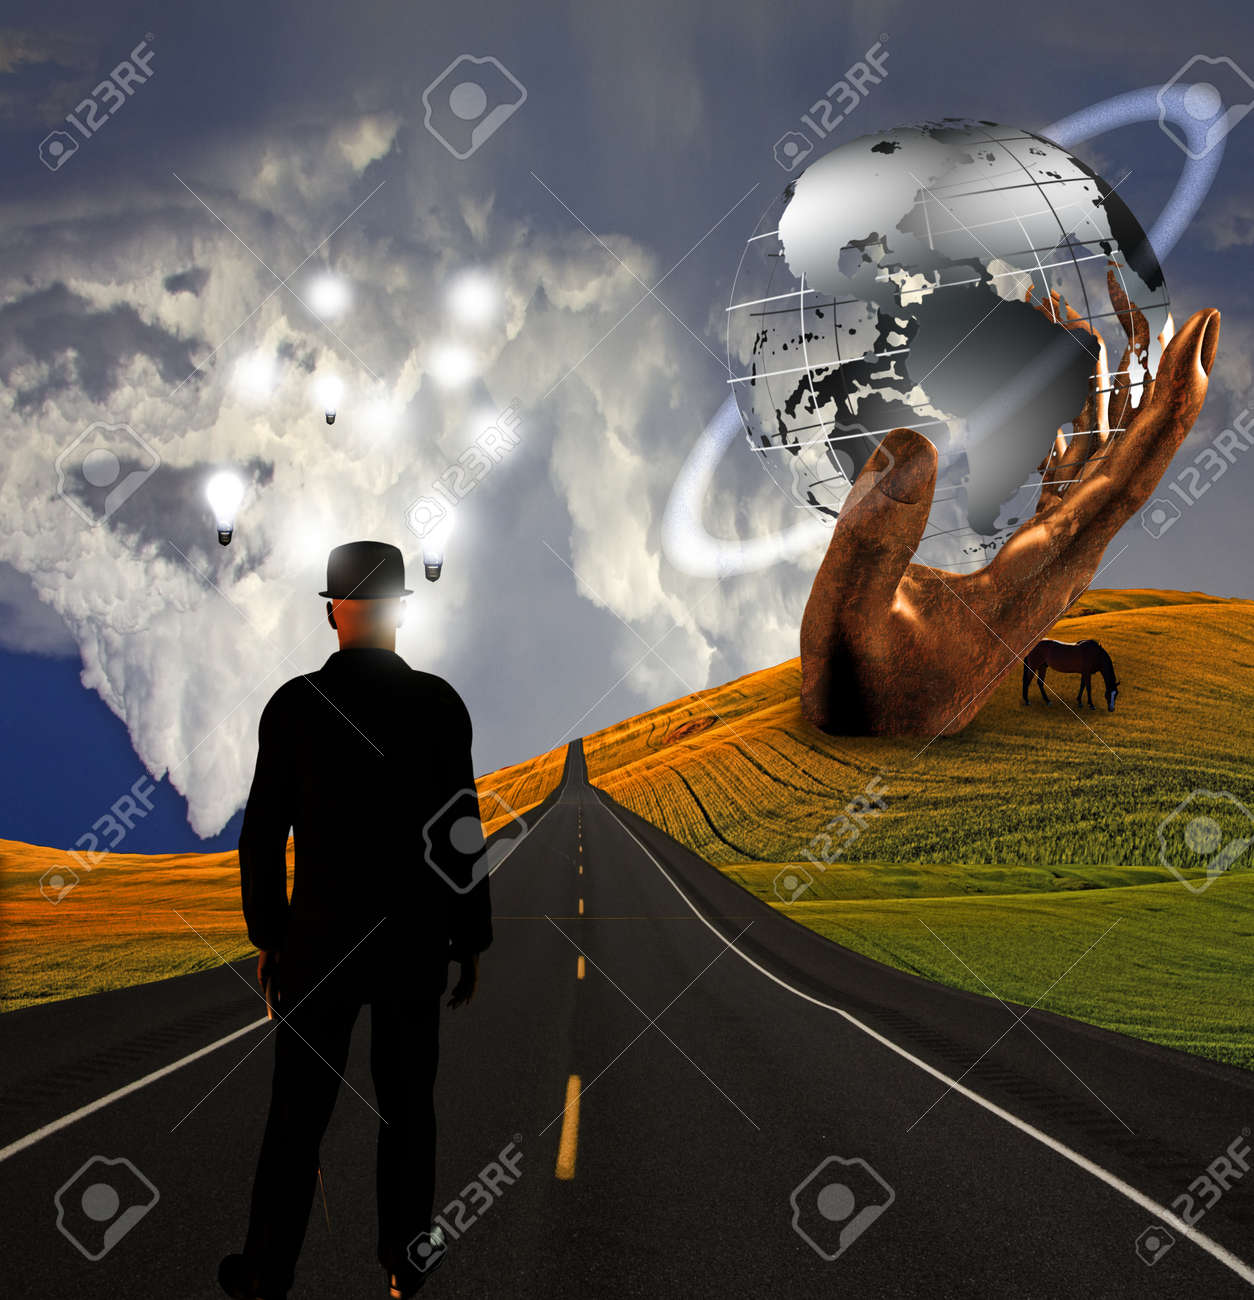 Man with ideas in landscape with sculpture Stock Photo - 10056383